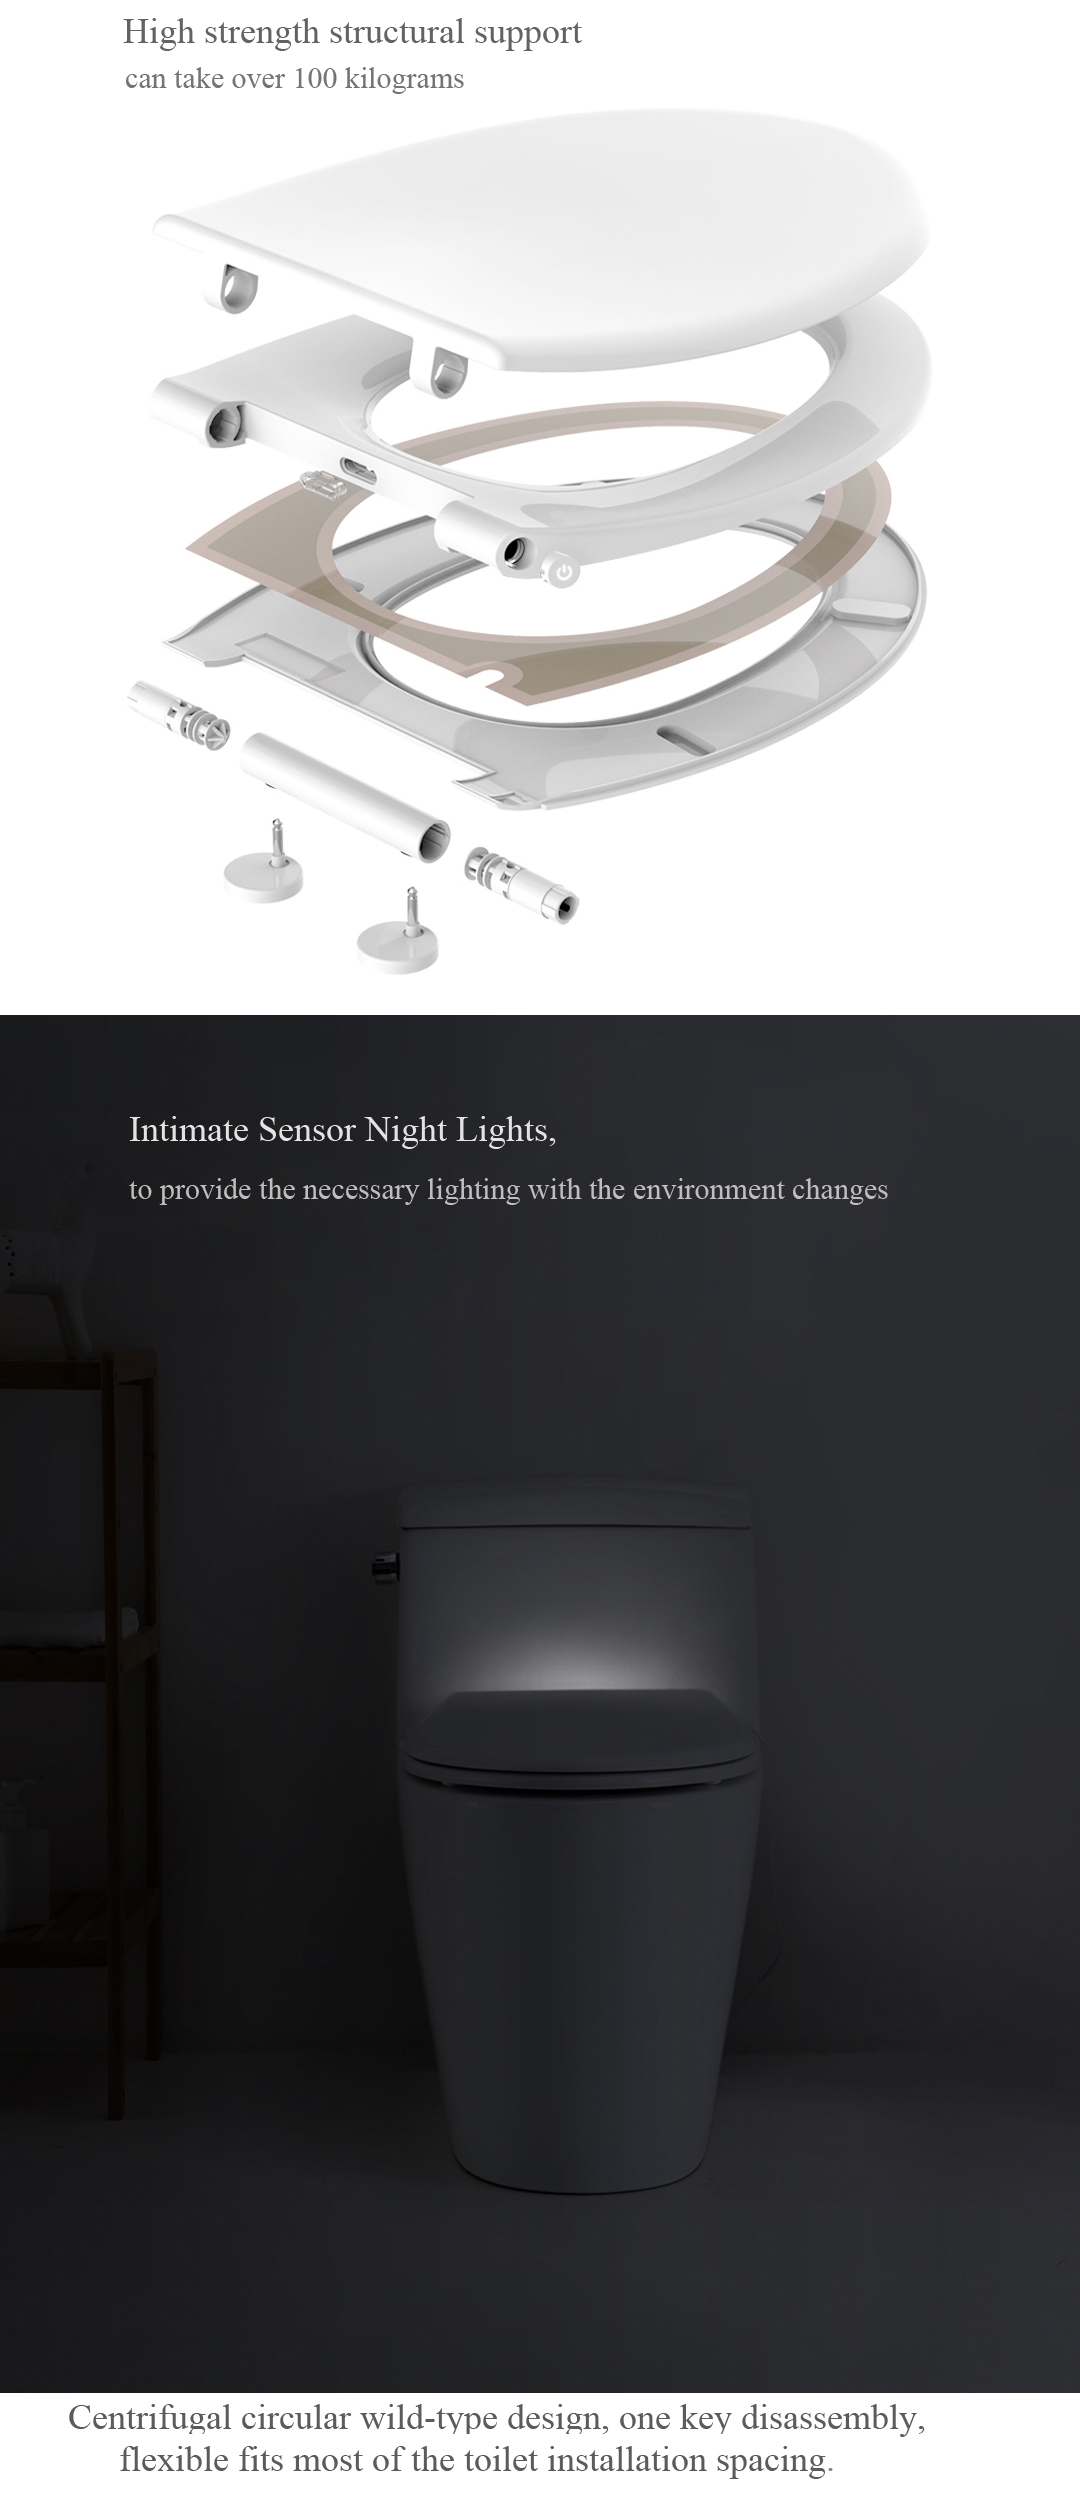 Awe Inspiring Heating Warm Electric Toilet Seat Covers For Closestool Ntc Temperature Control System From Xiaomi Youpin Beatyapartments Chair Design Images Beatyapartmentscom